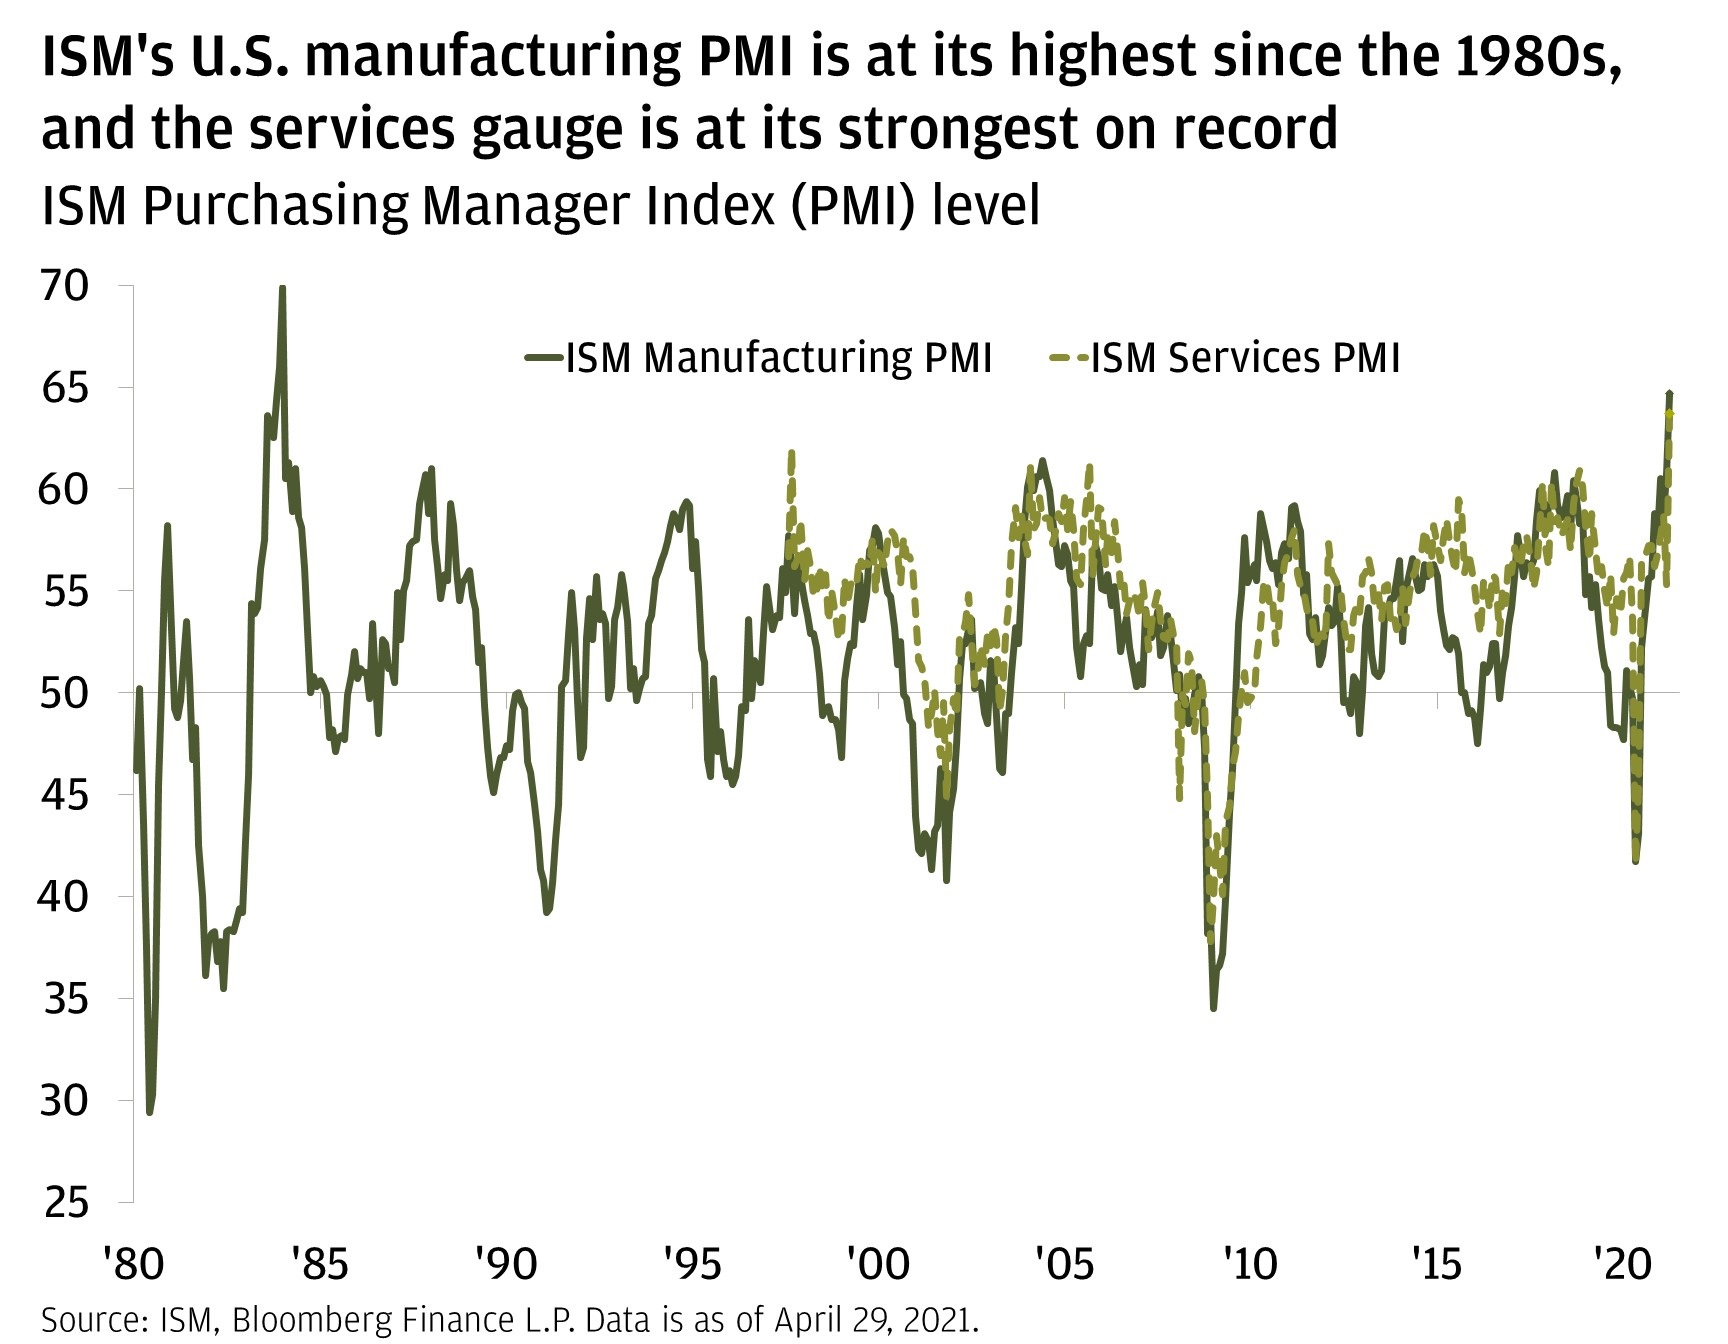 Chart 1: ISM's U.S. manufacturing PMI is at its highest since the 1980s, and services gauge is at its strongest on record.